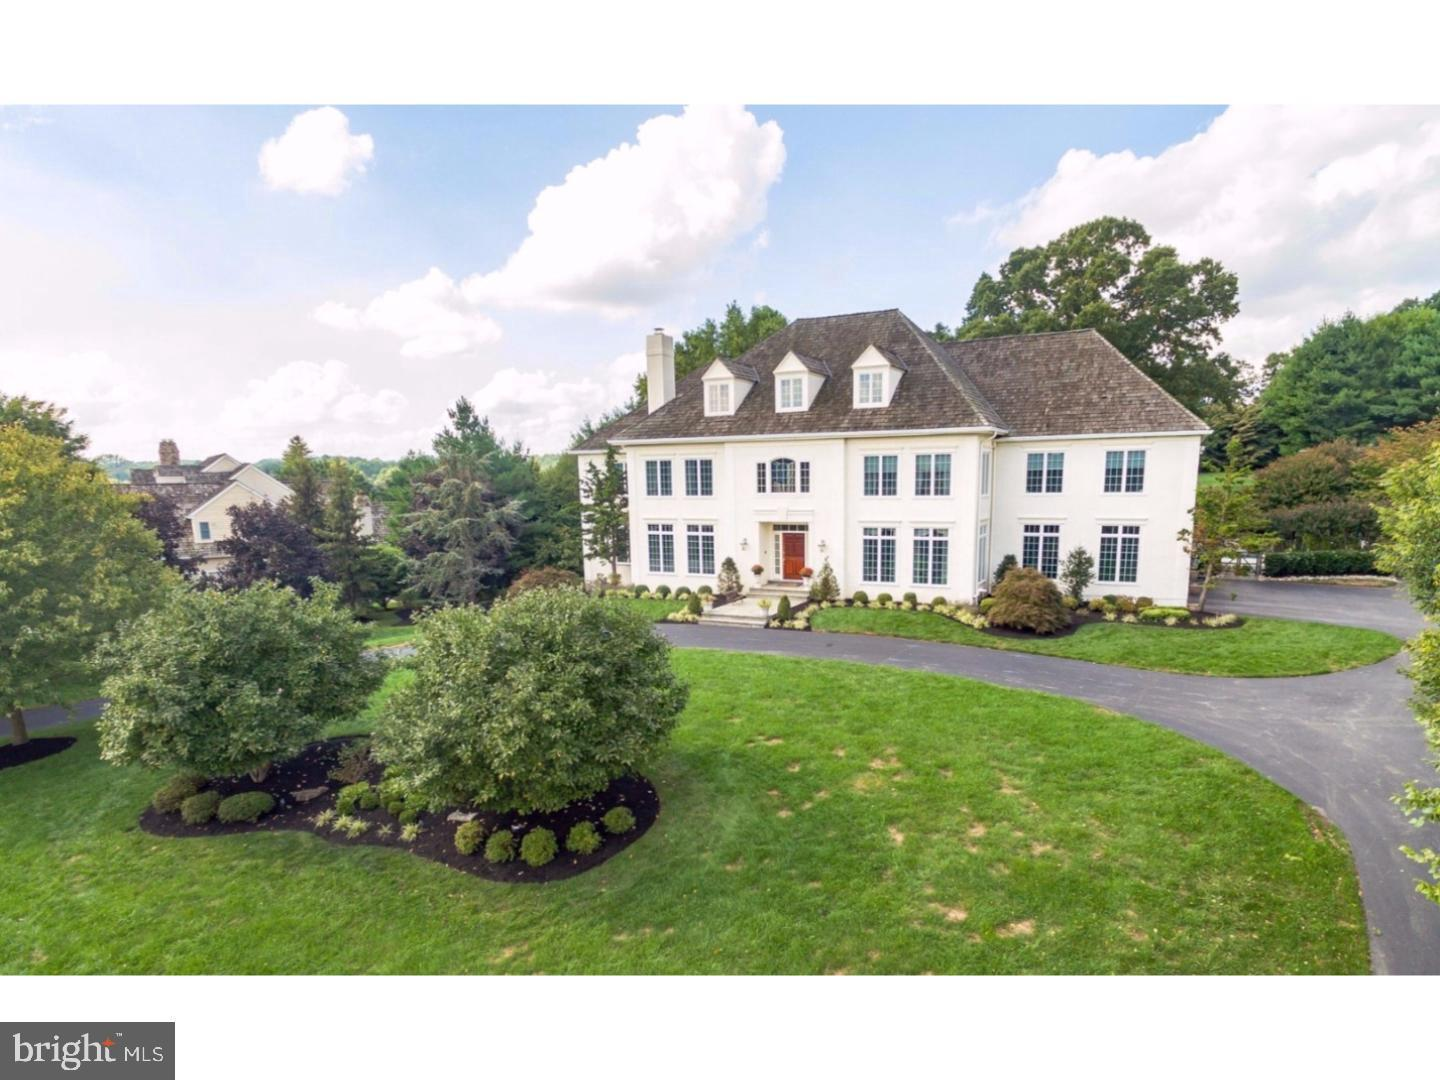 27 HARRISON DRIVE, NEWTOWN SQUARE, PA 19073